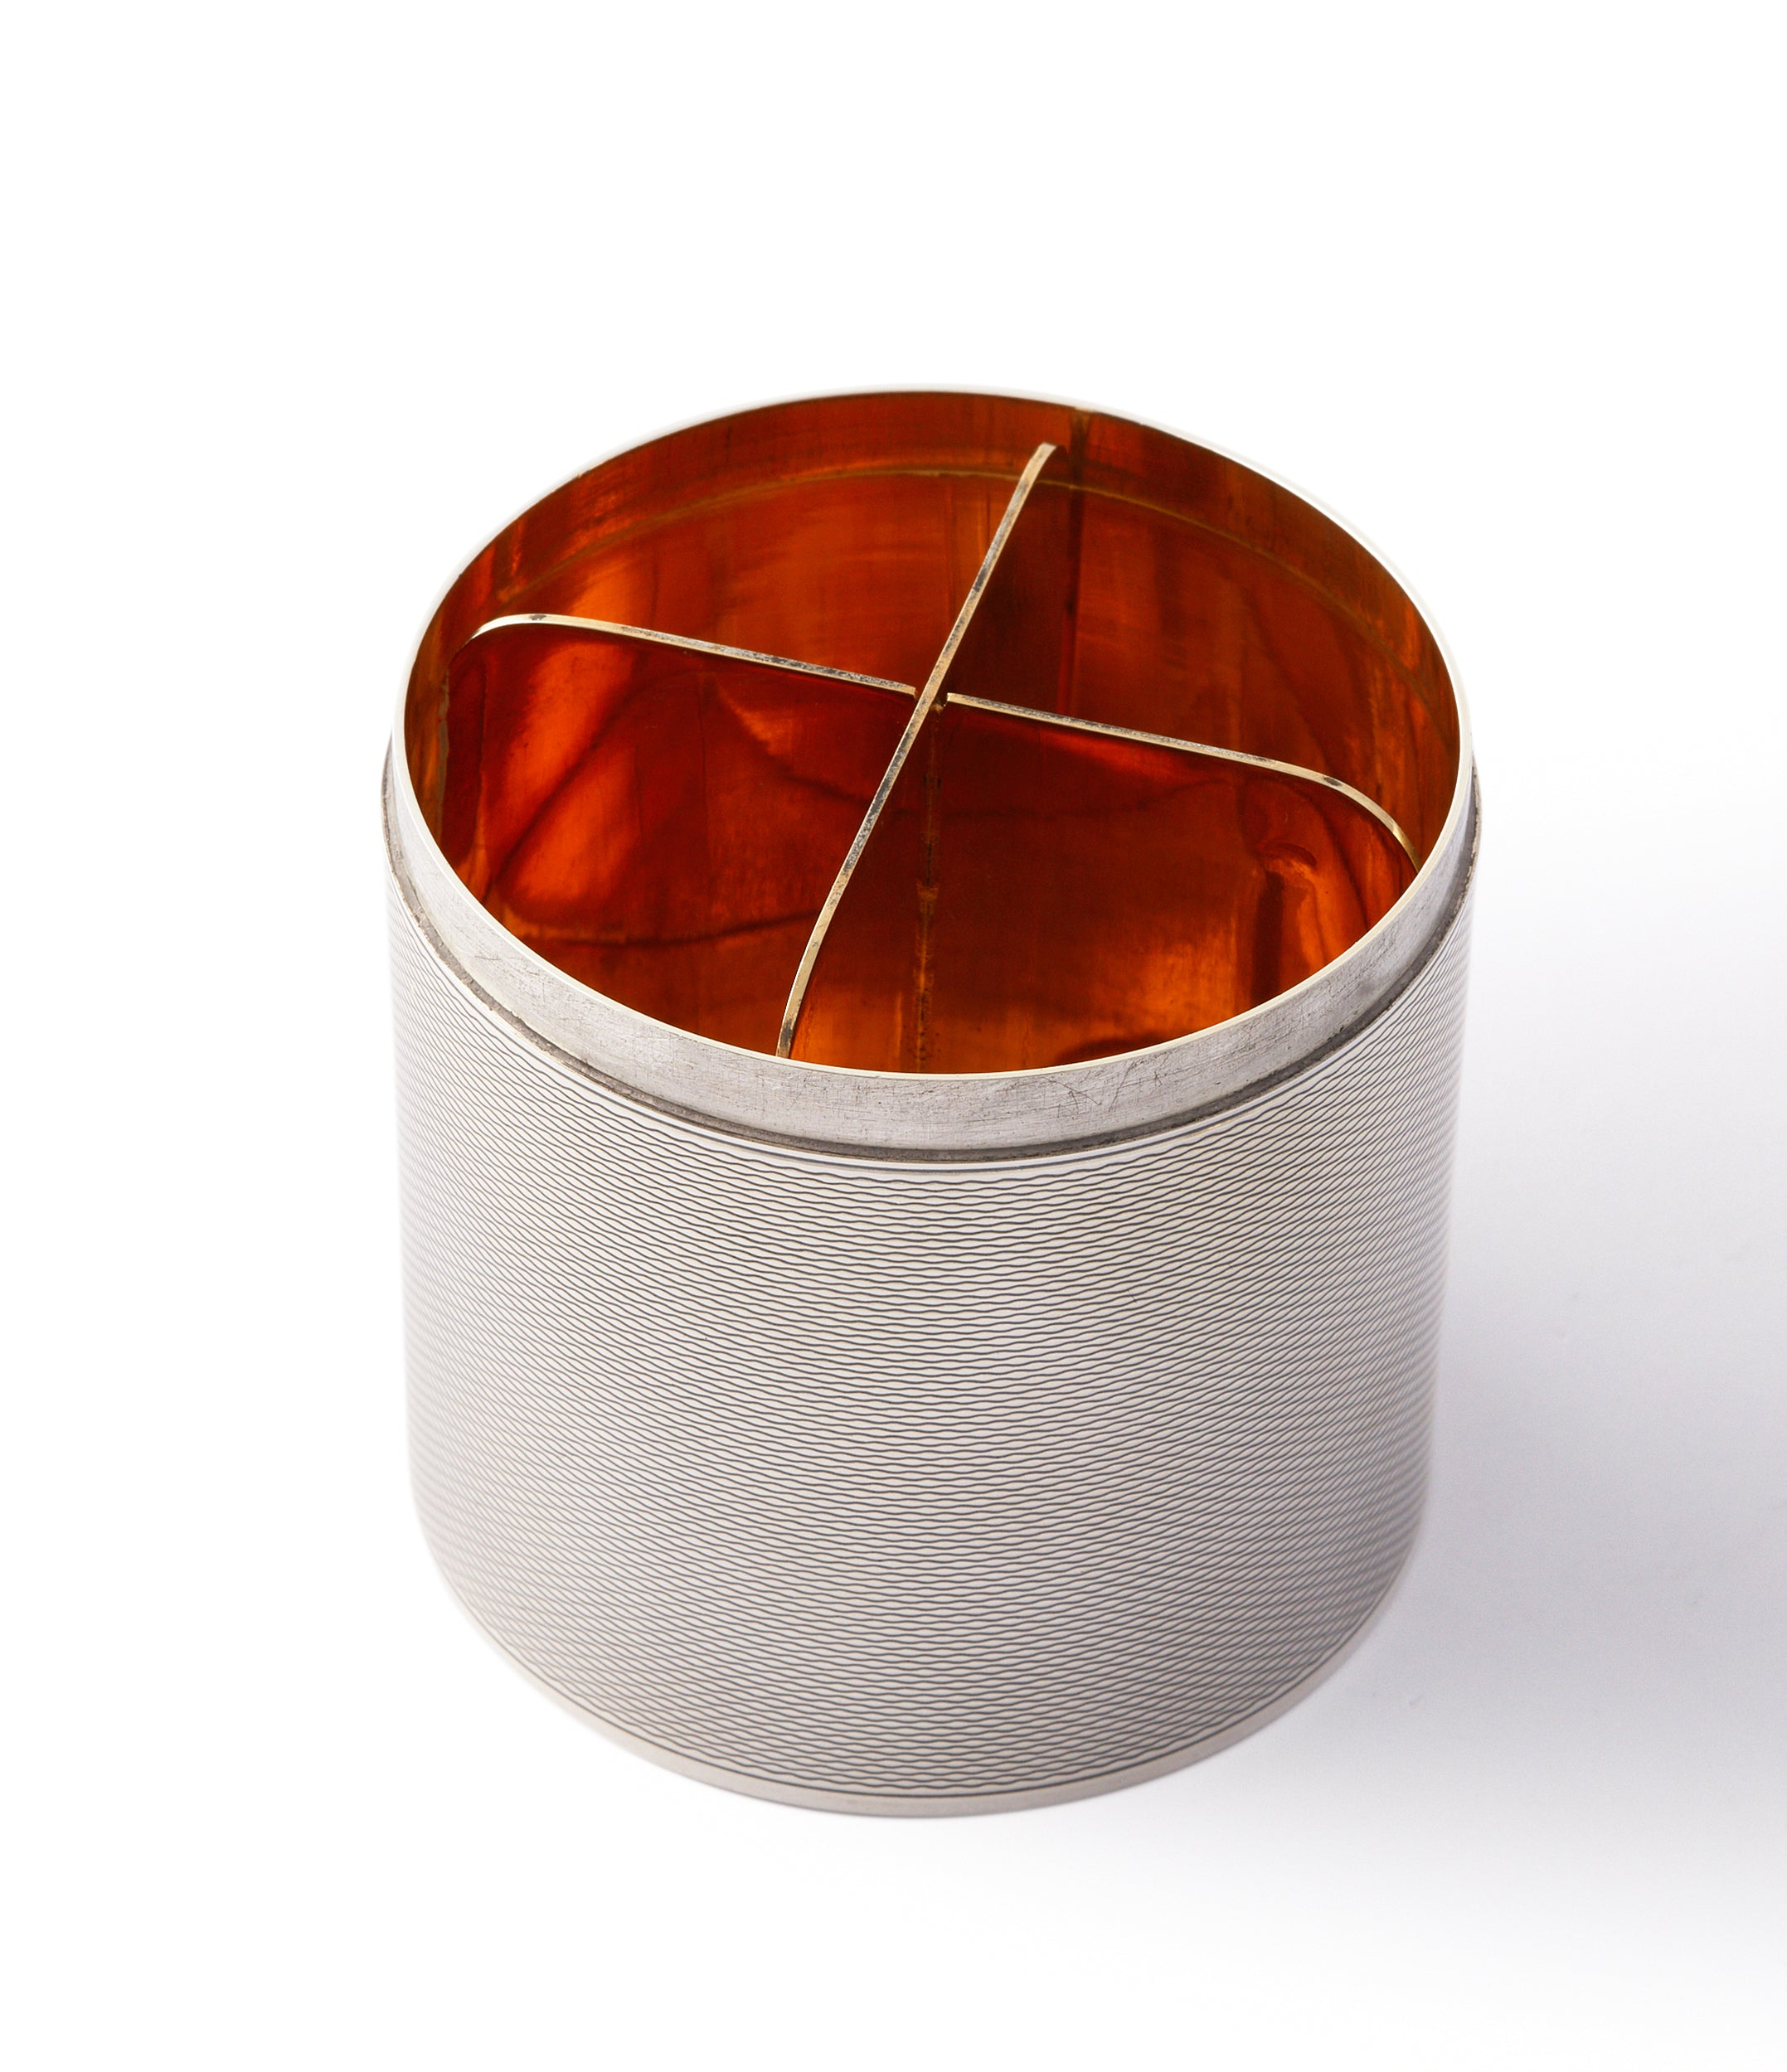 silver Hermès by Ravinet d'Enfert engine-turned cigarette pot canister box for sale online A Collected Man London UK specialist of rare collectable objects